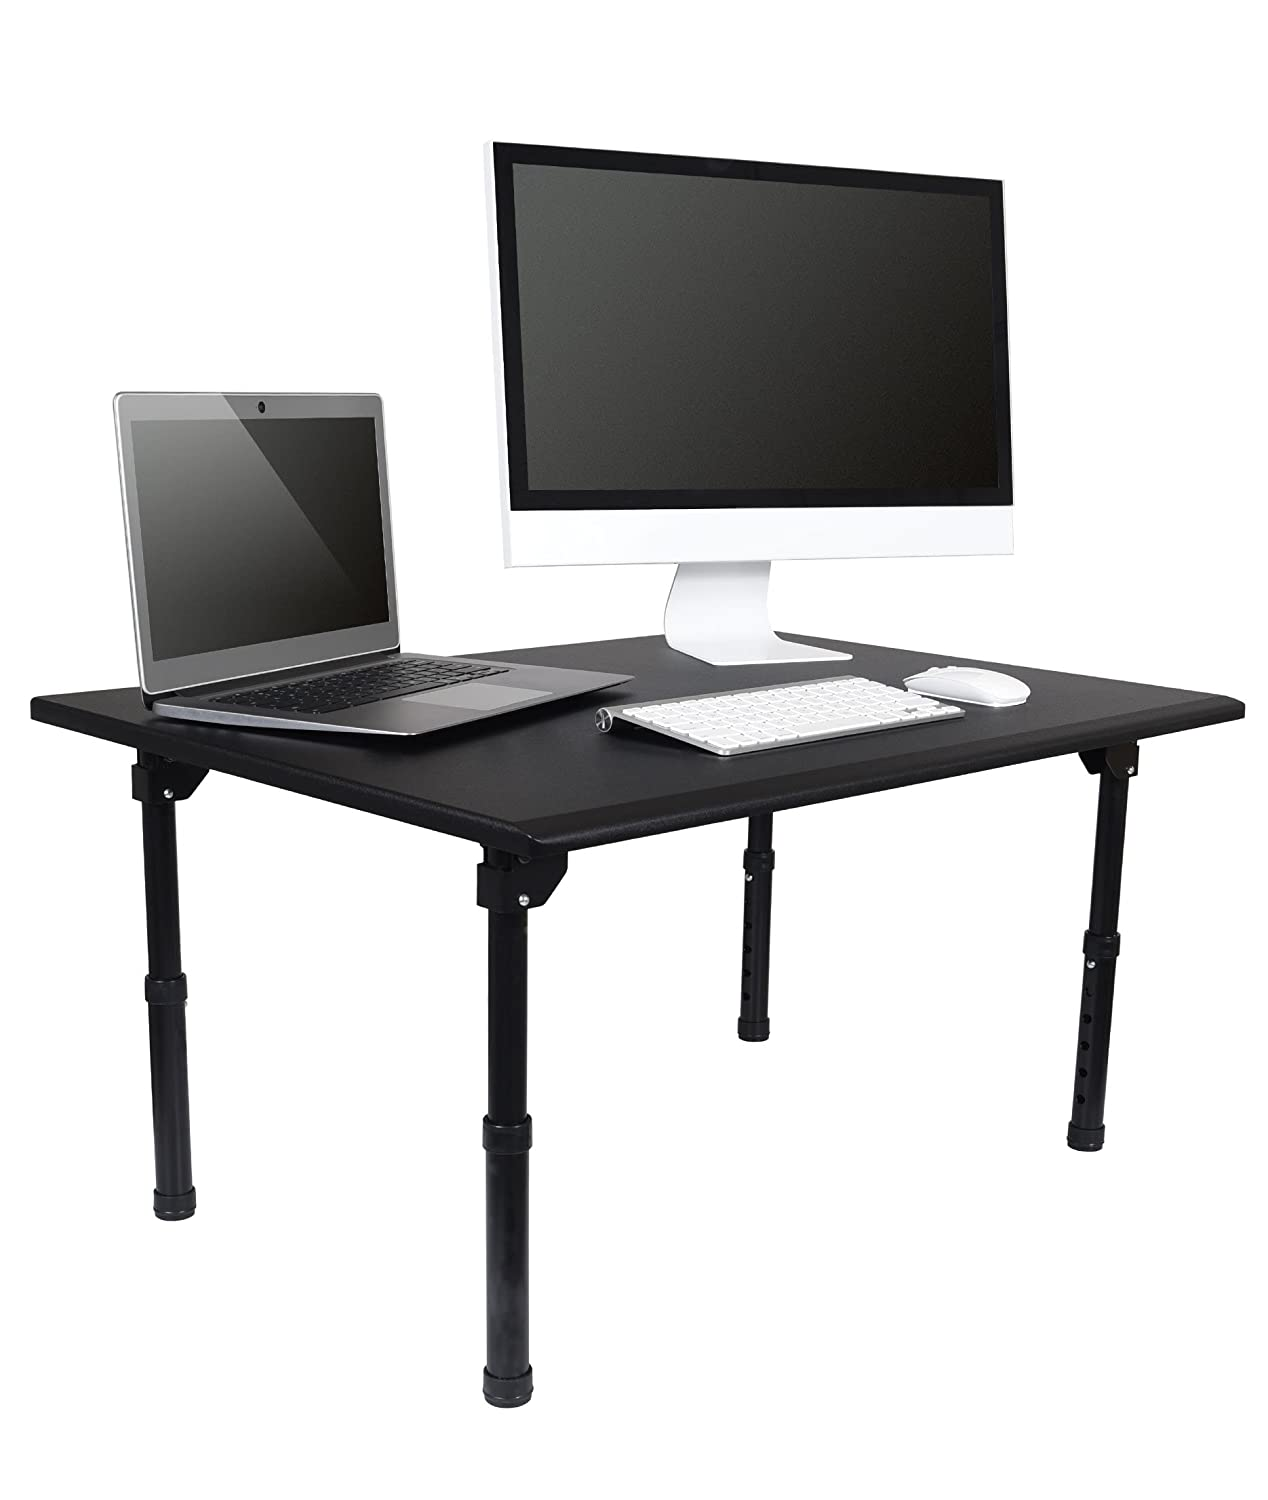 amazon com adjustable height standing desk w folding legs convert rh amazon com folding standing desk uk folding standing laptop desk